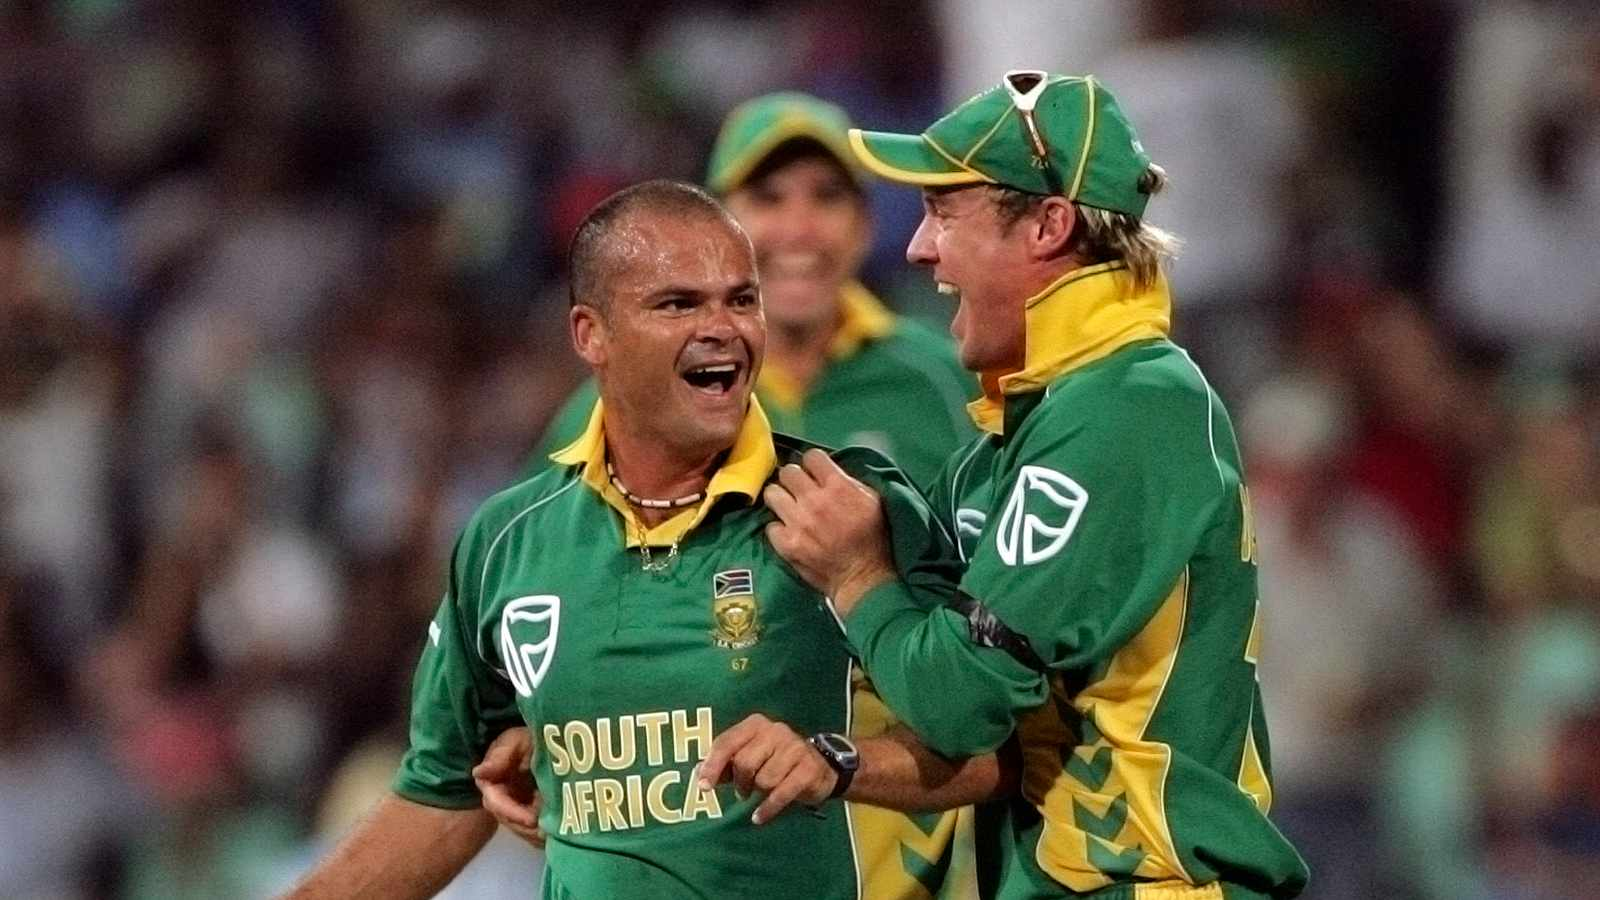 Proteas' top 41 pros: Part 1